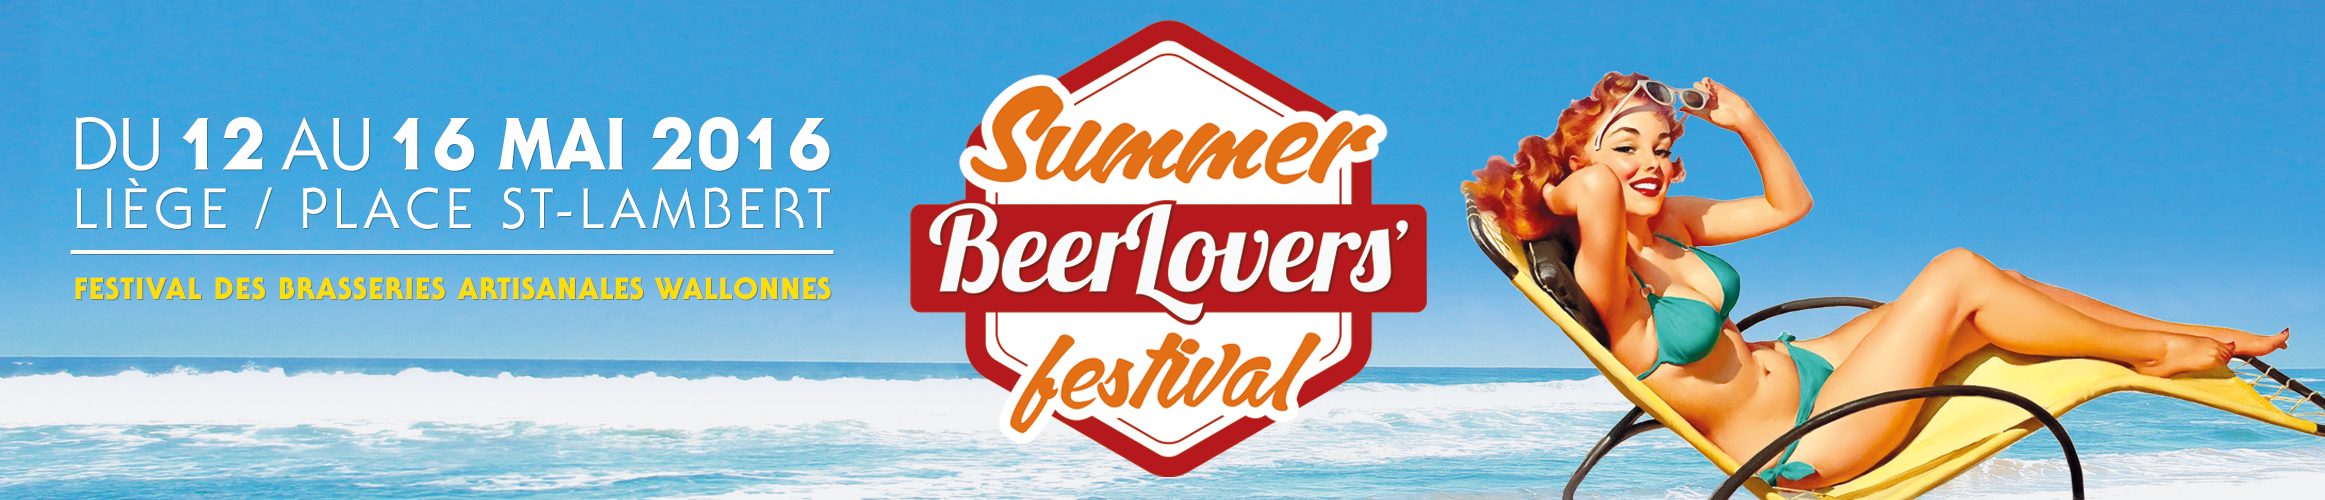 summer beer lovers 2016 - cover fb 2325-500px